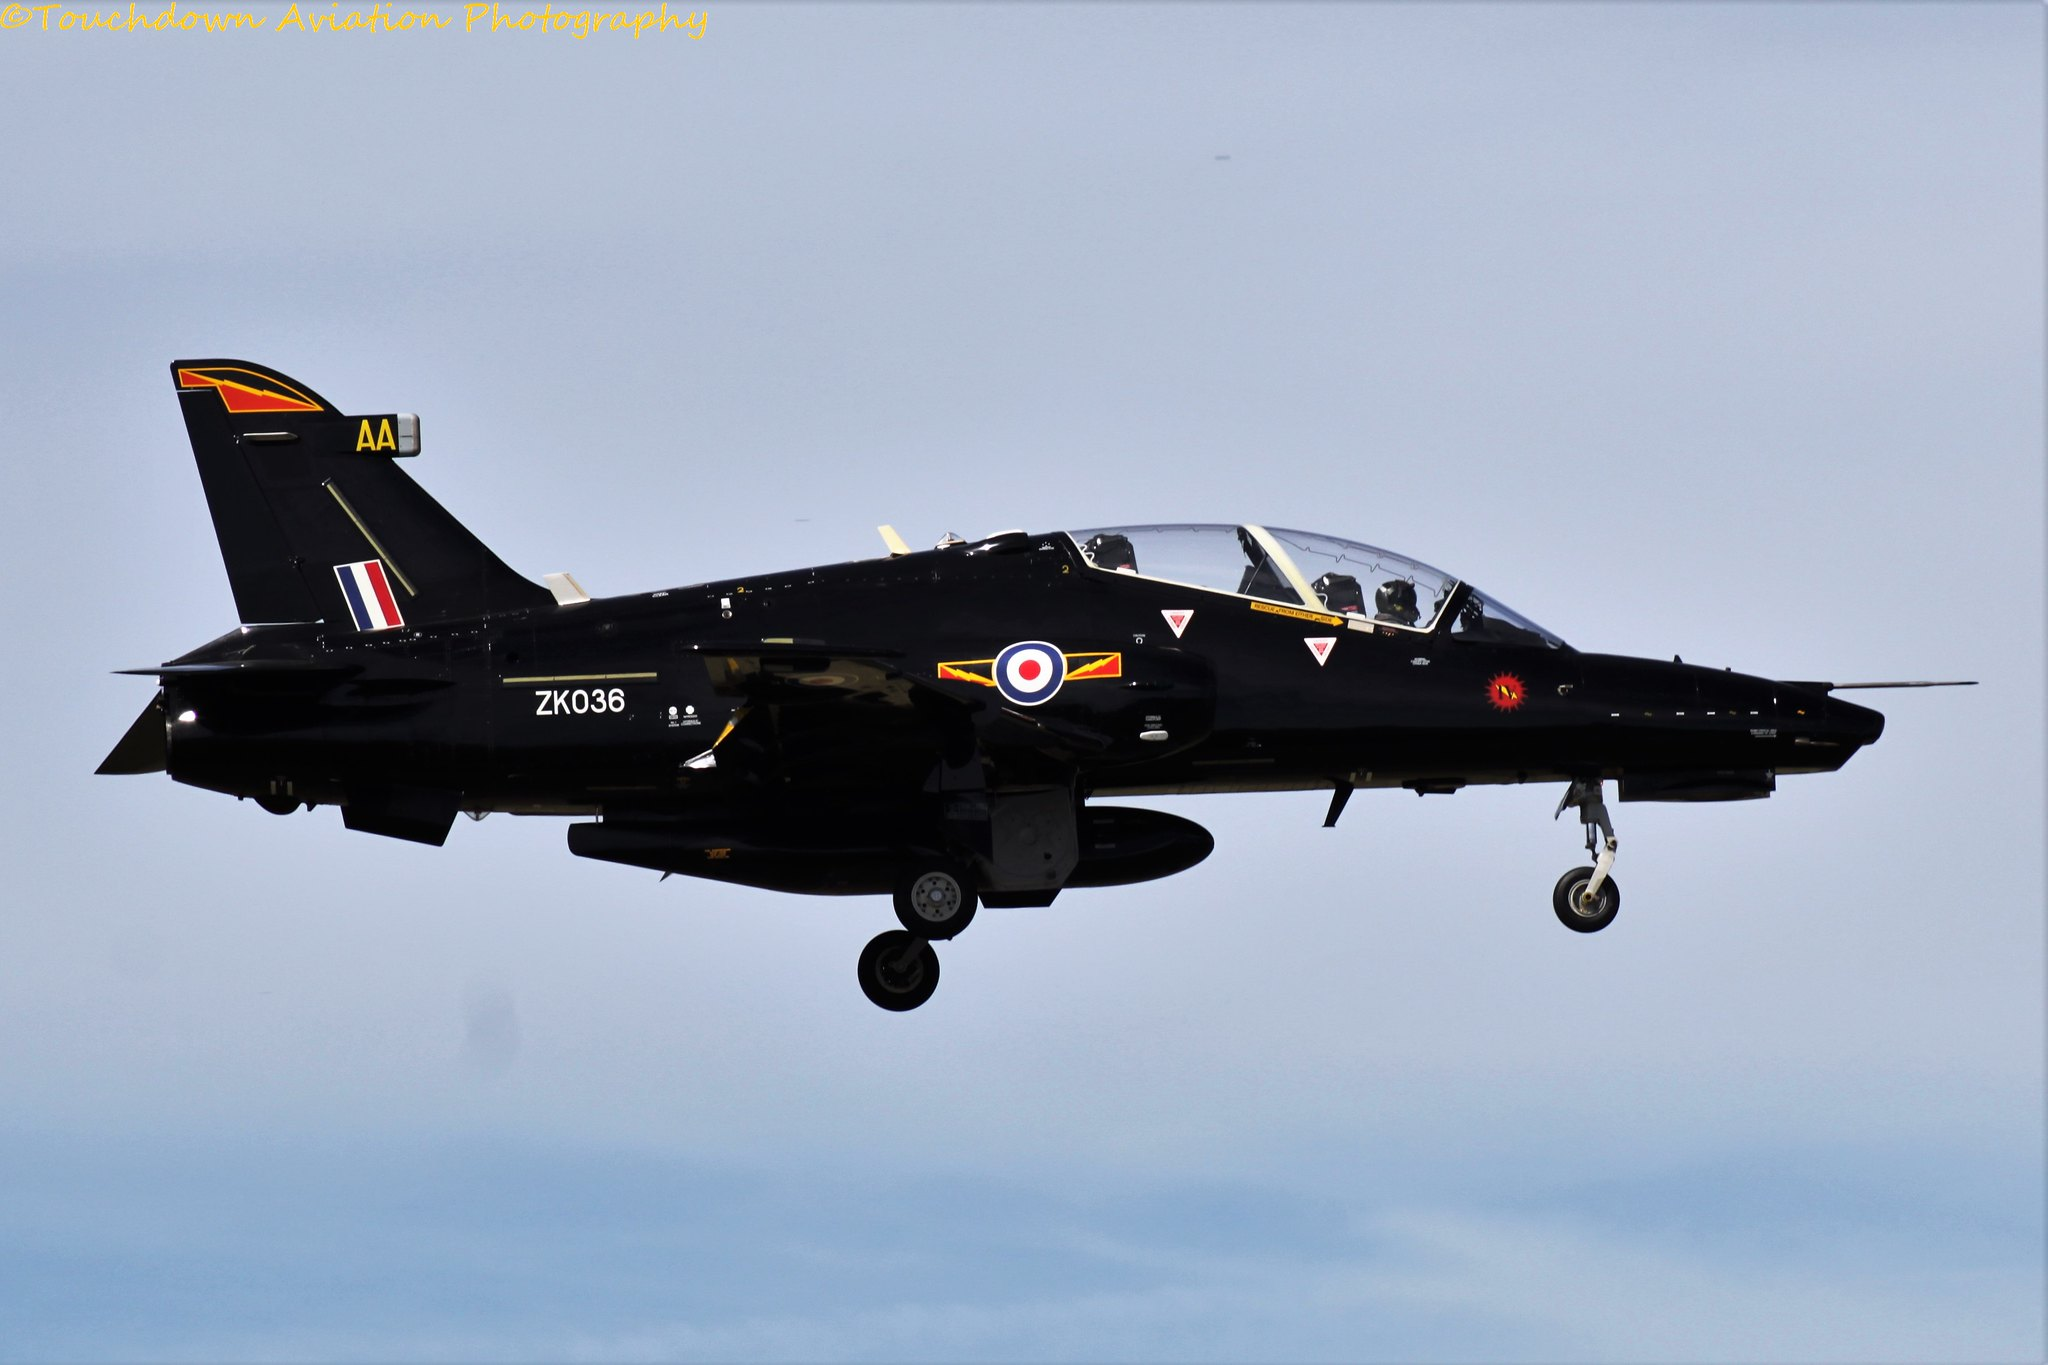 Royal Air Force Hawk T.2 ZK036 23AUG16